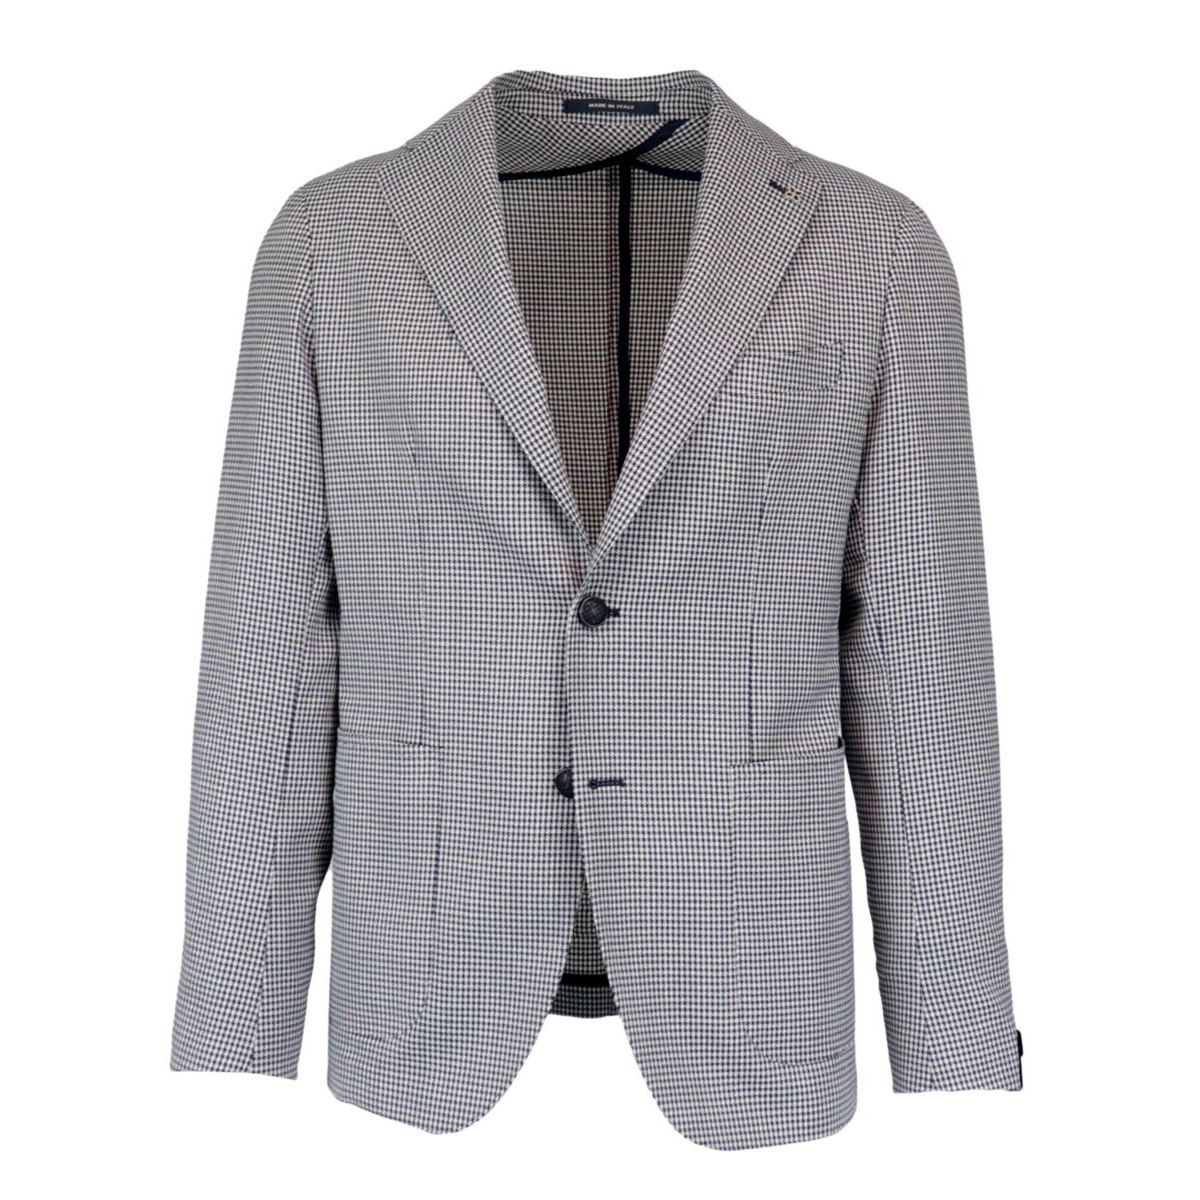 Two-button wool jacket with houndstooth pattern Blue Tagliatore